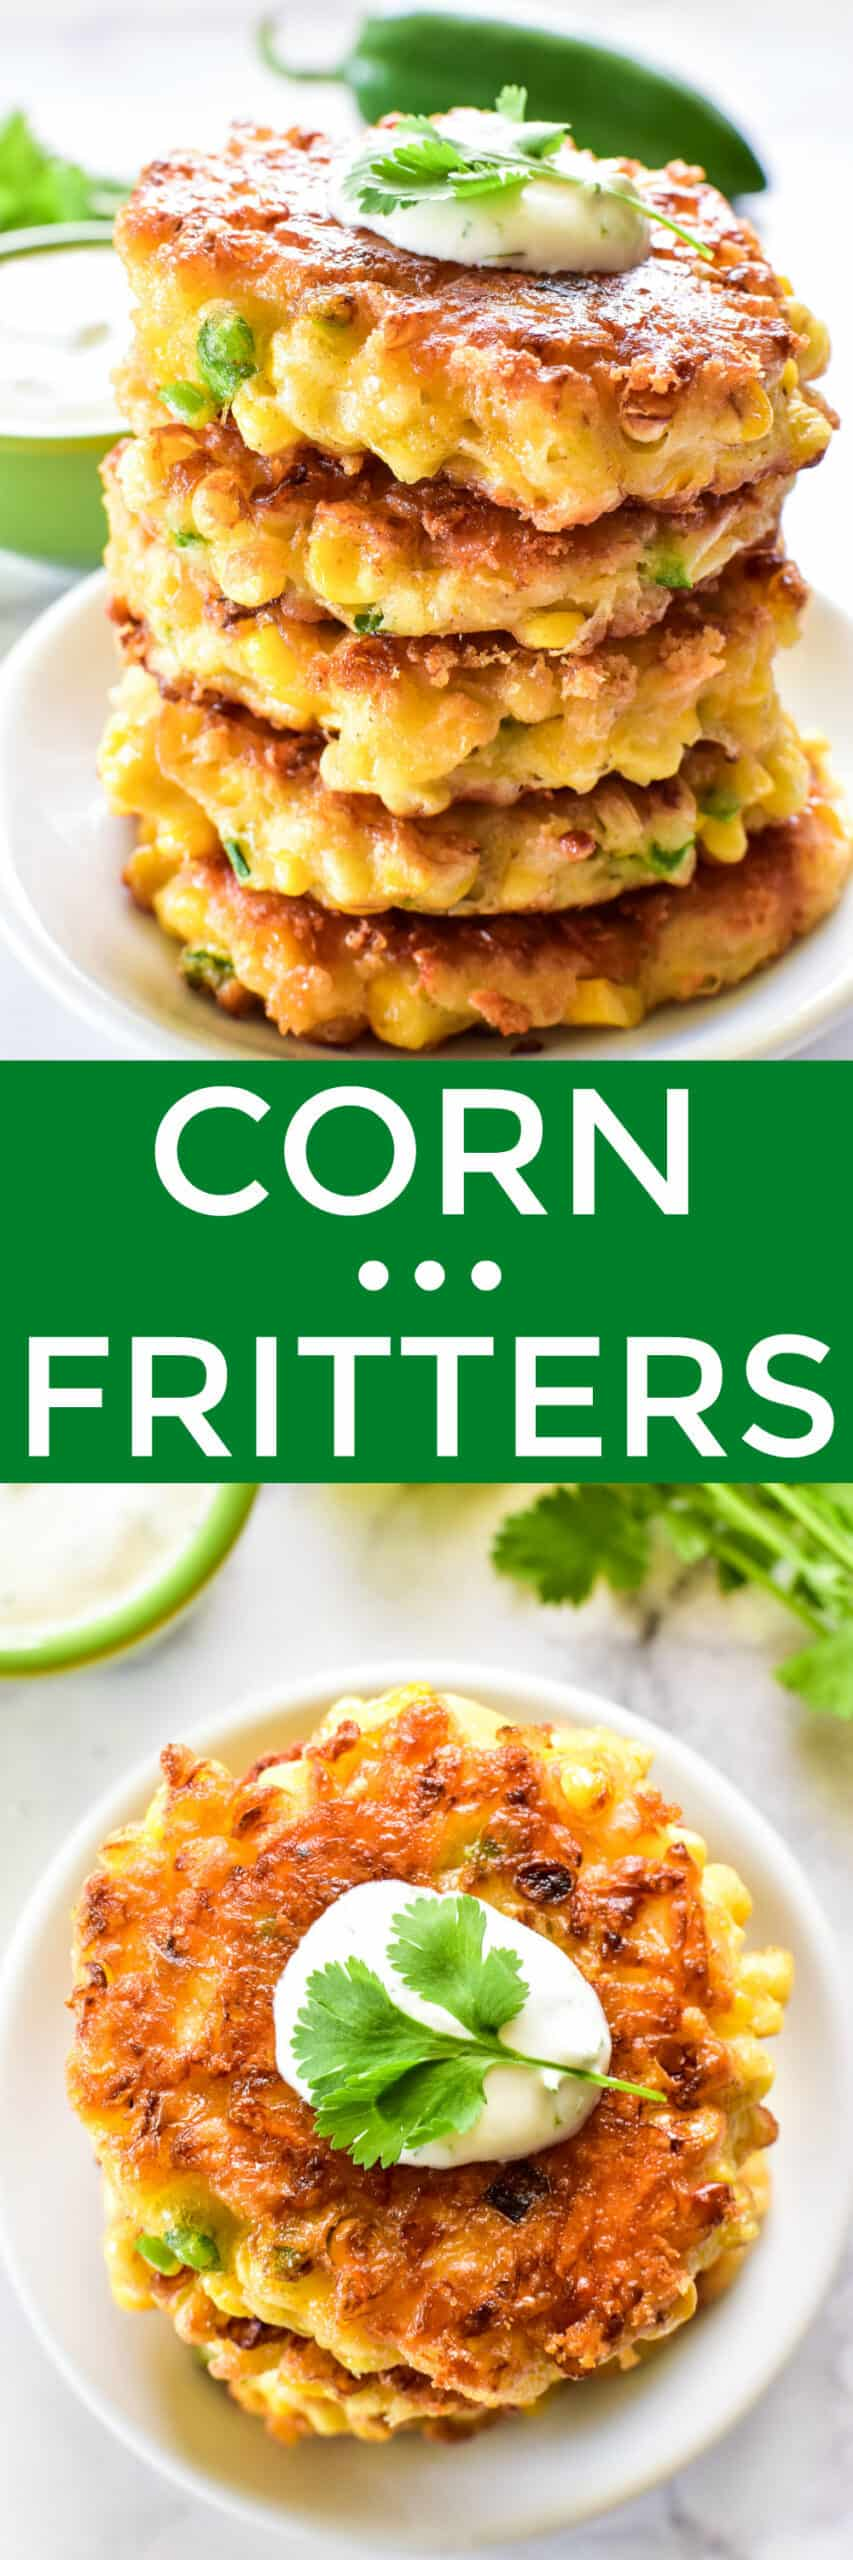 Collage image of Corn Fritters stacked on a plate